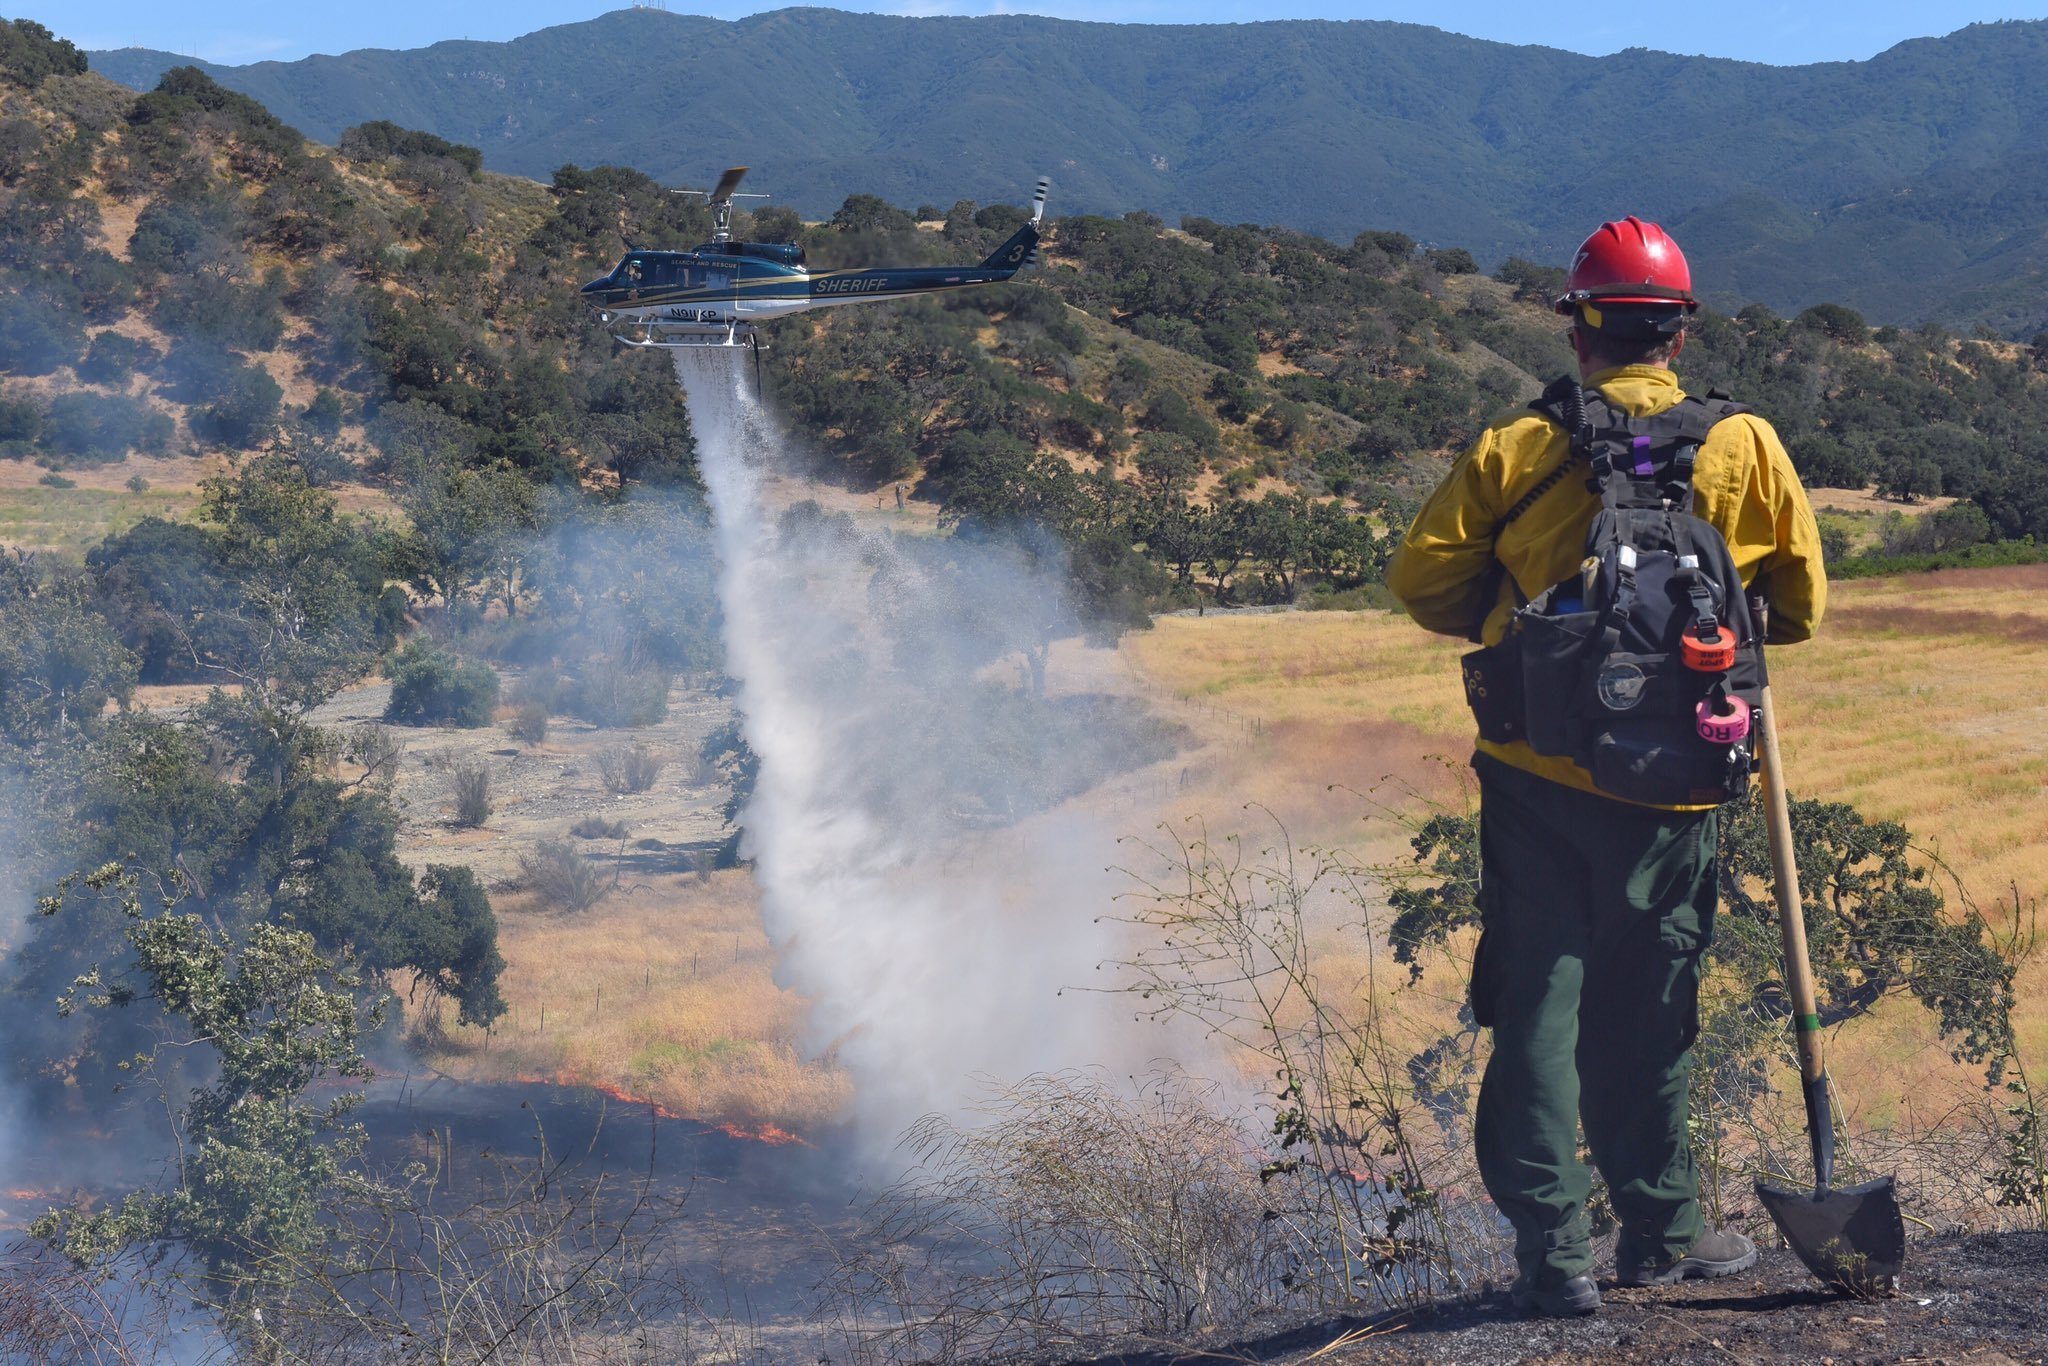 A helicopter drops water on a fire in the Santa Ynez Valley. (Photo courtesy Mike Eliason, Santa Barbara Co. Fire Dept.)